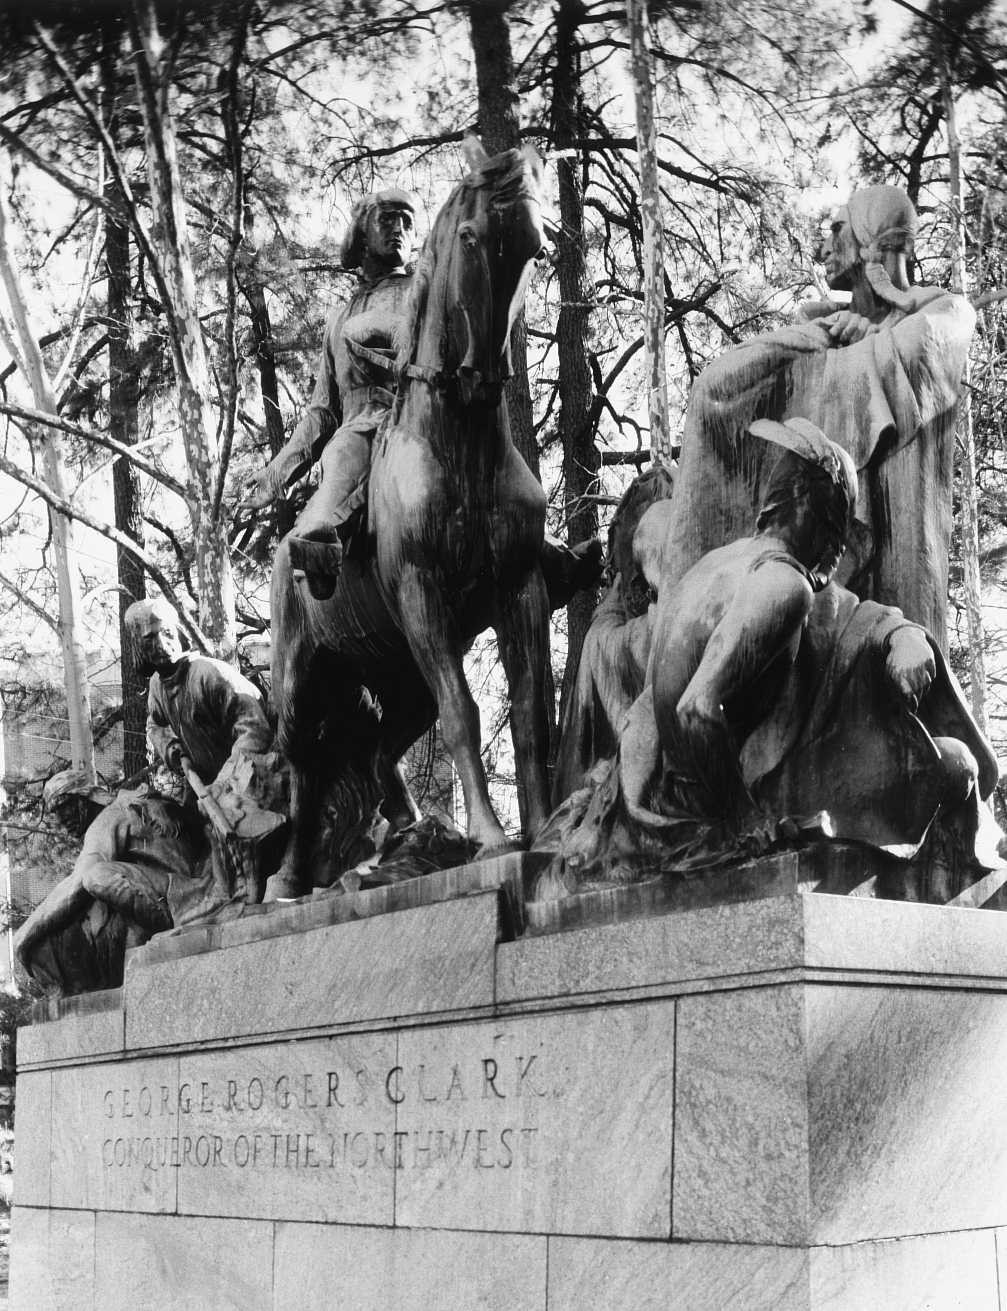 George Rogers Clark Monument